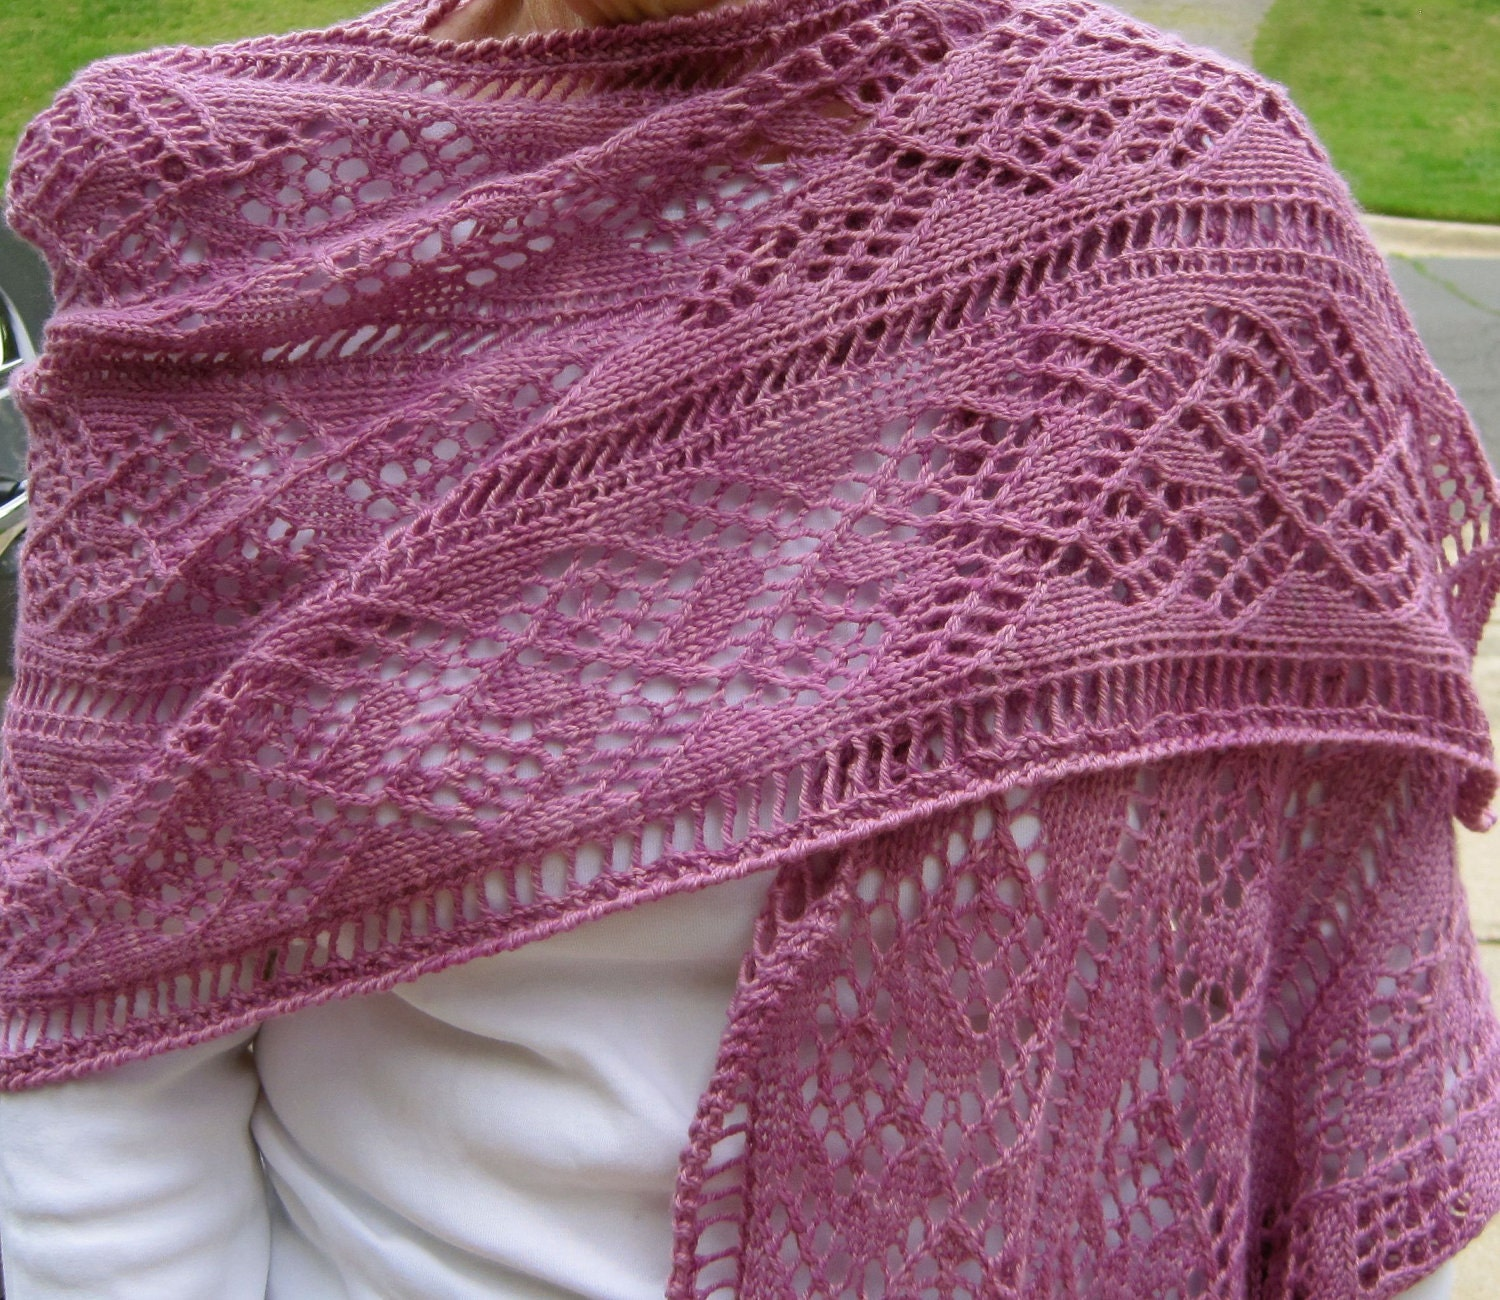 Knit Wrap Pattern: Ladder and Lace Light Wrap Knitting